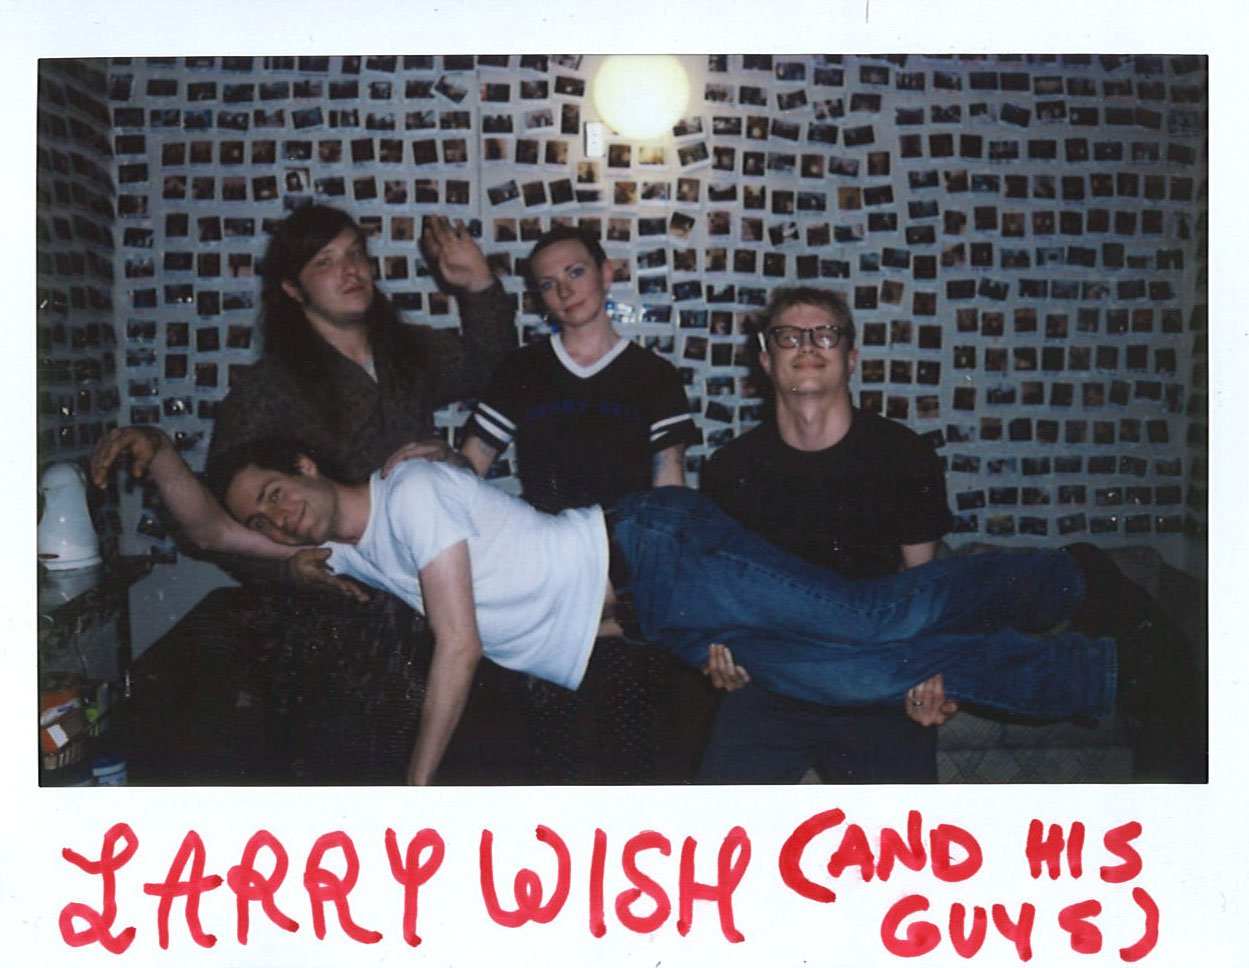 Larry Wish & His Guys